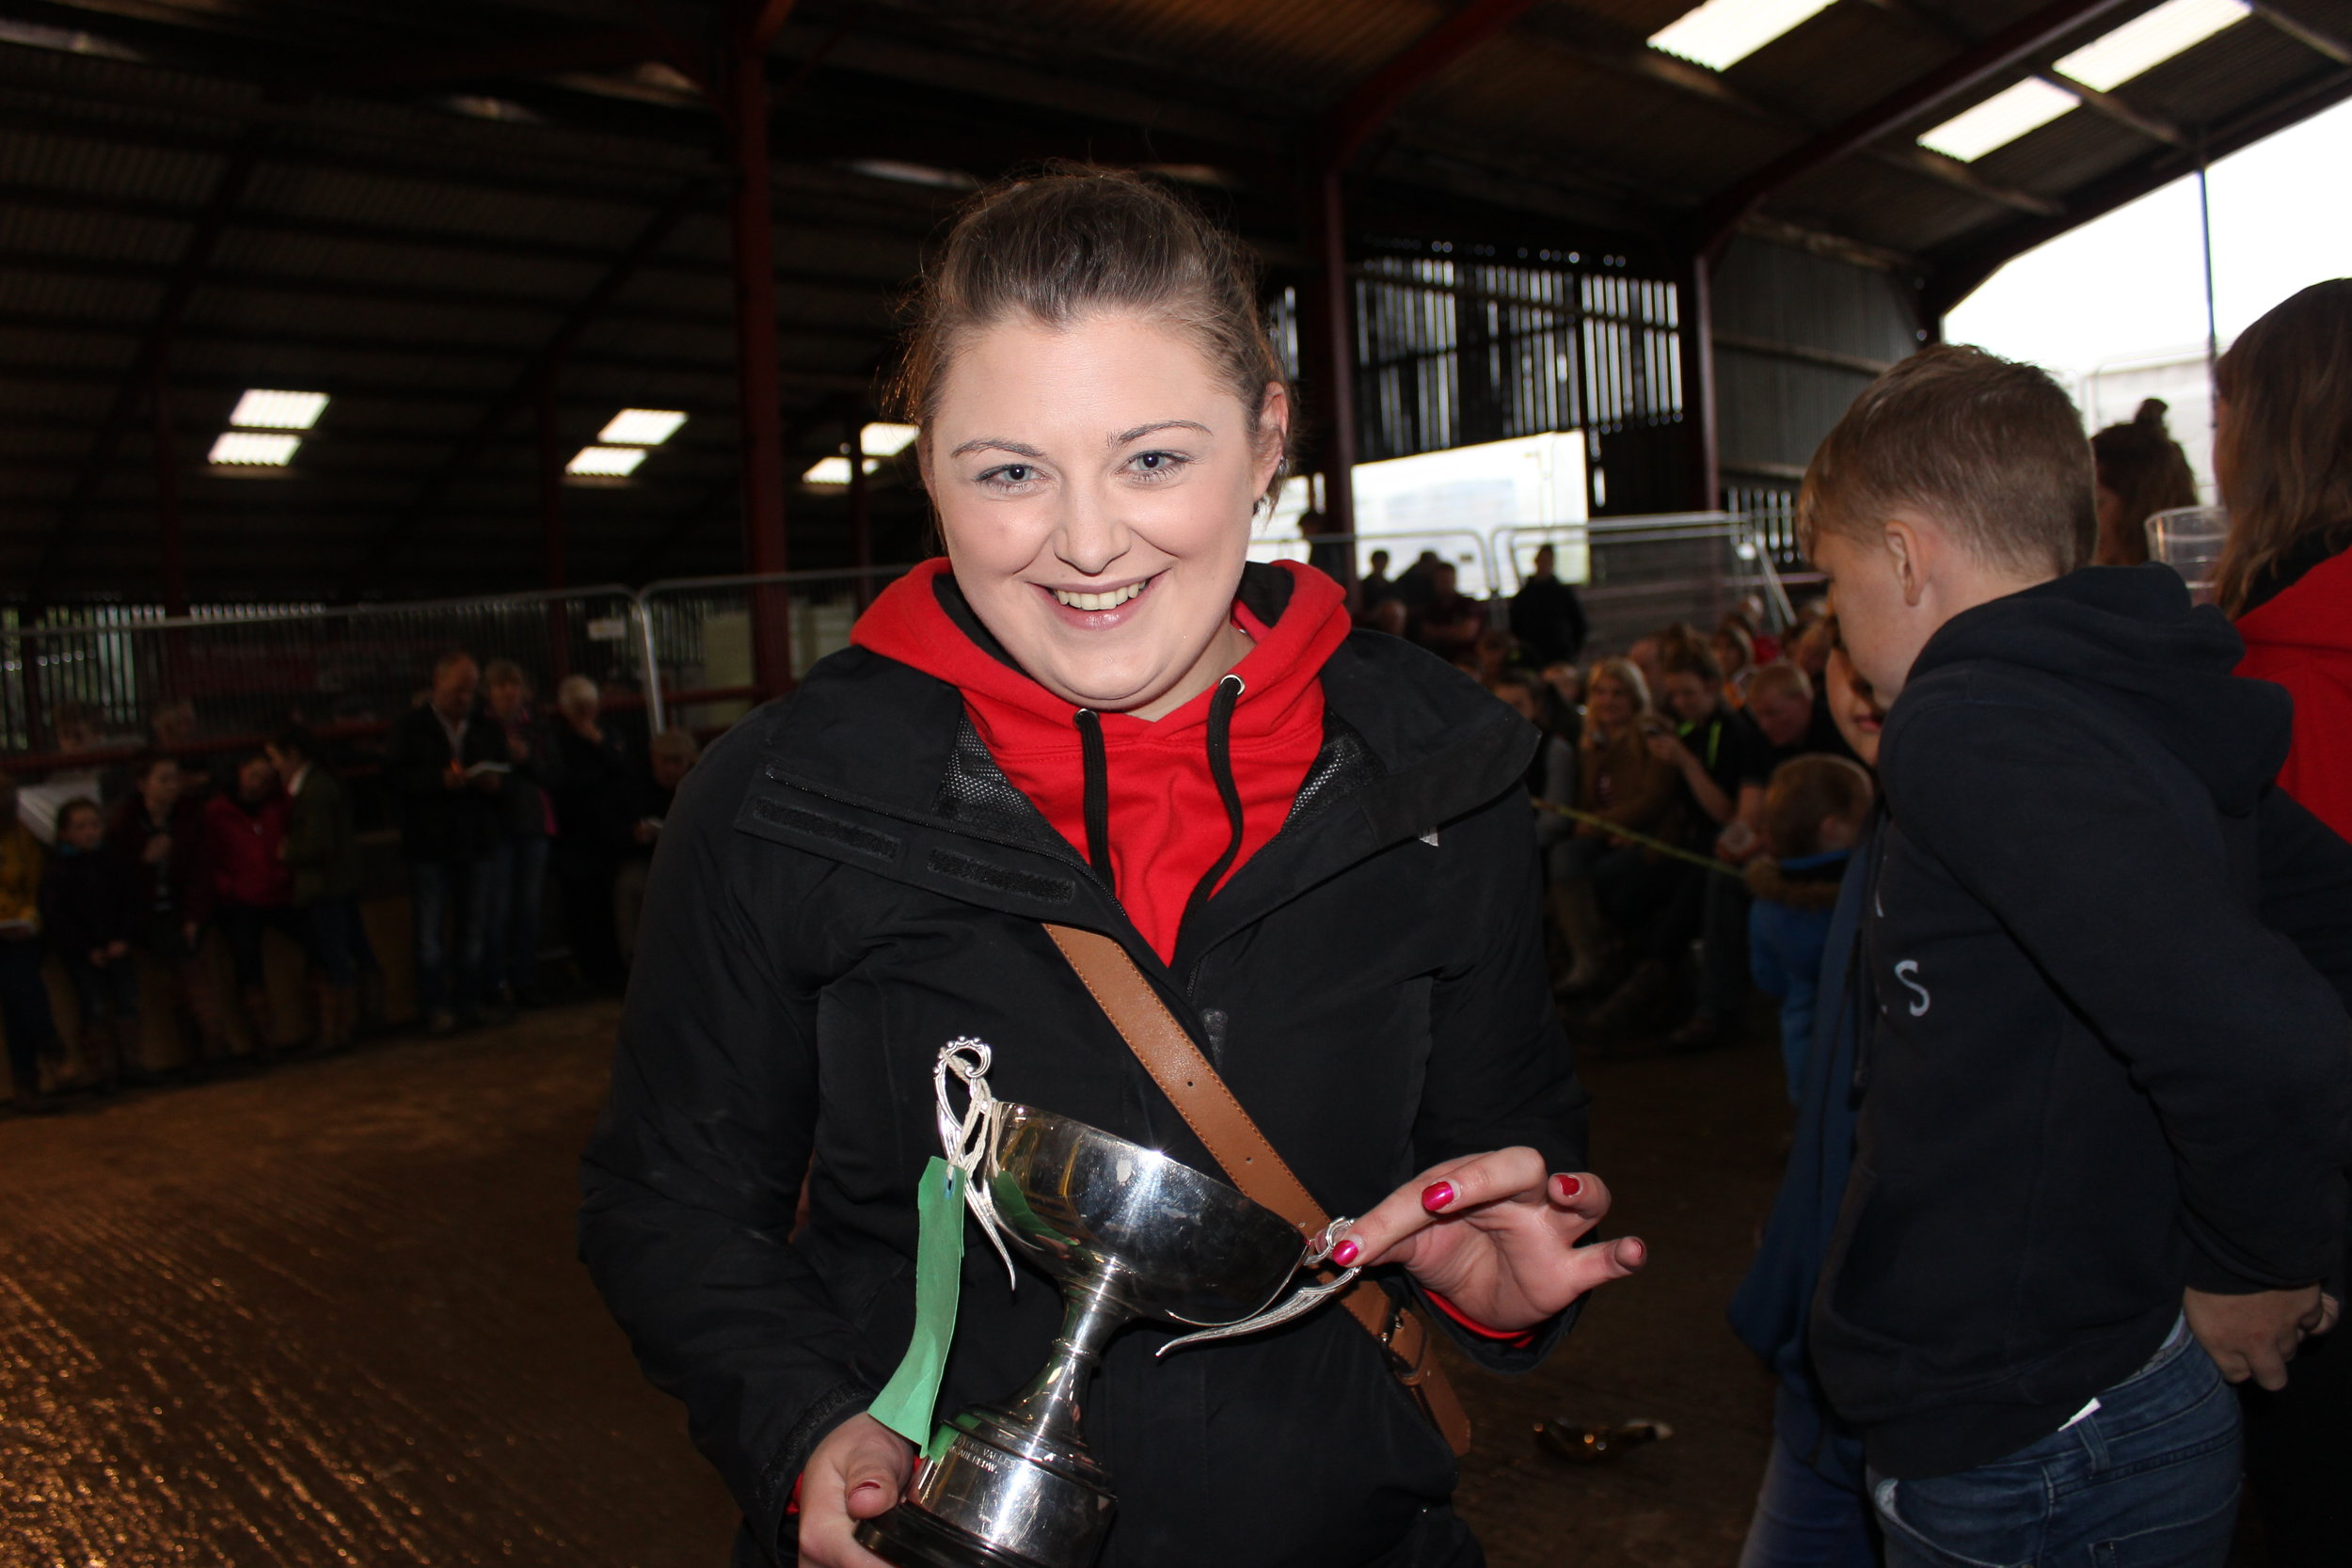 Jess Barrett, Teme Valley YFC - Glenda Lawrence Cup (Pre Rally Promotional Sign)